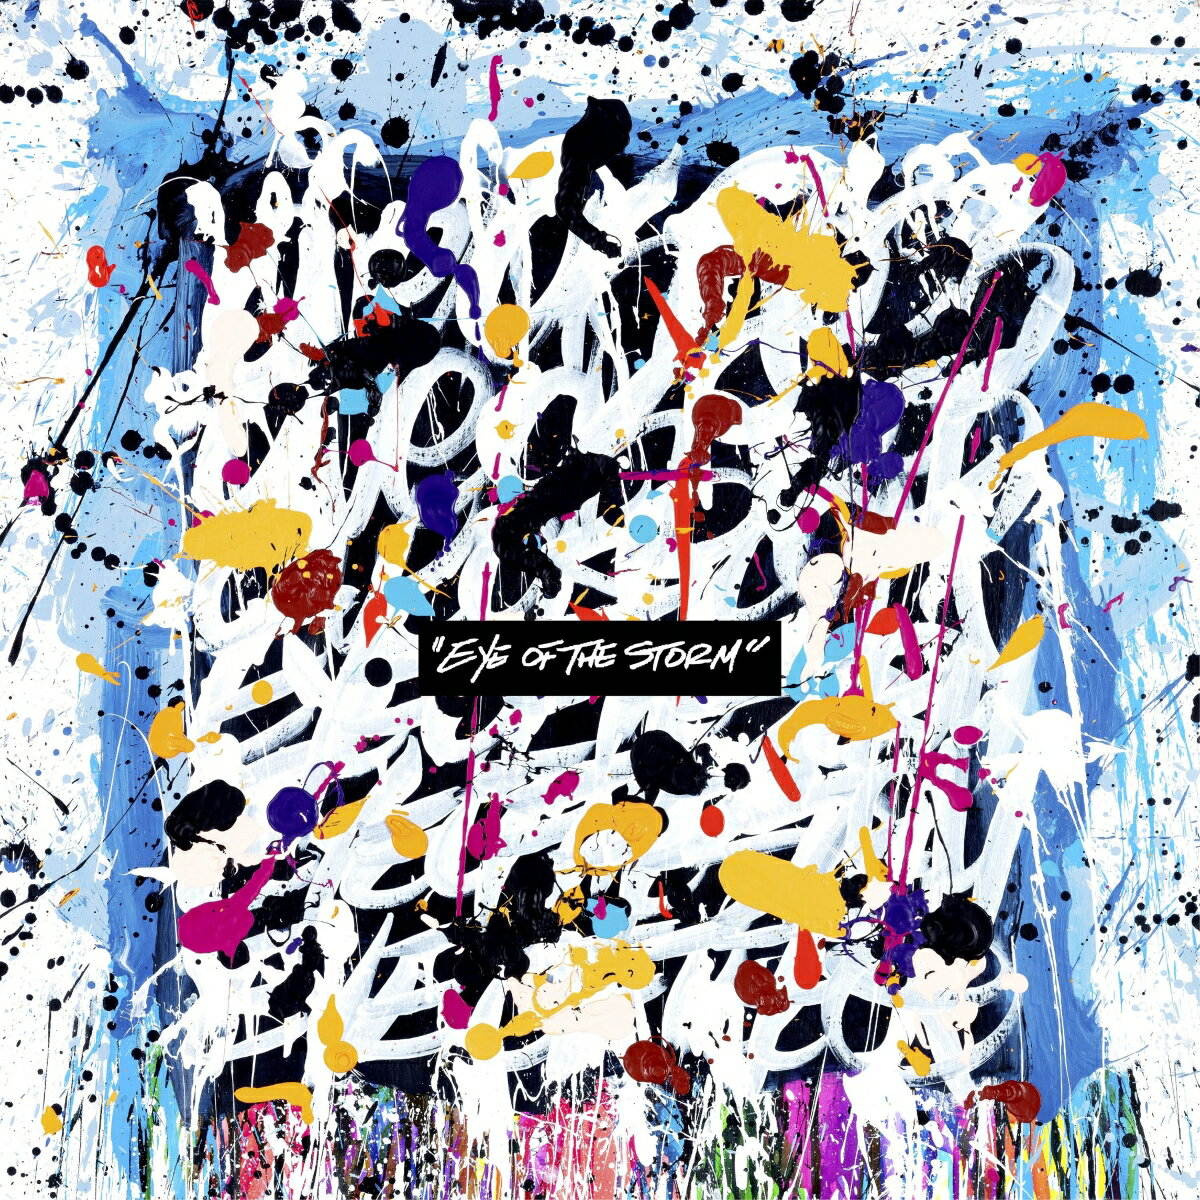 Eye of the Storm (初回限定盤 CD+DVD)【特典なし】 [ ONE OK ROCK ]